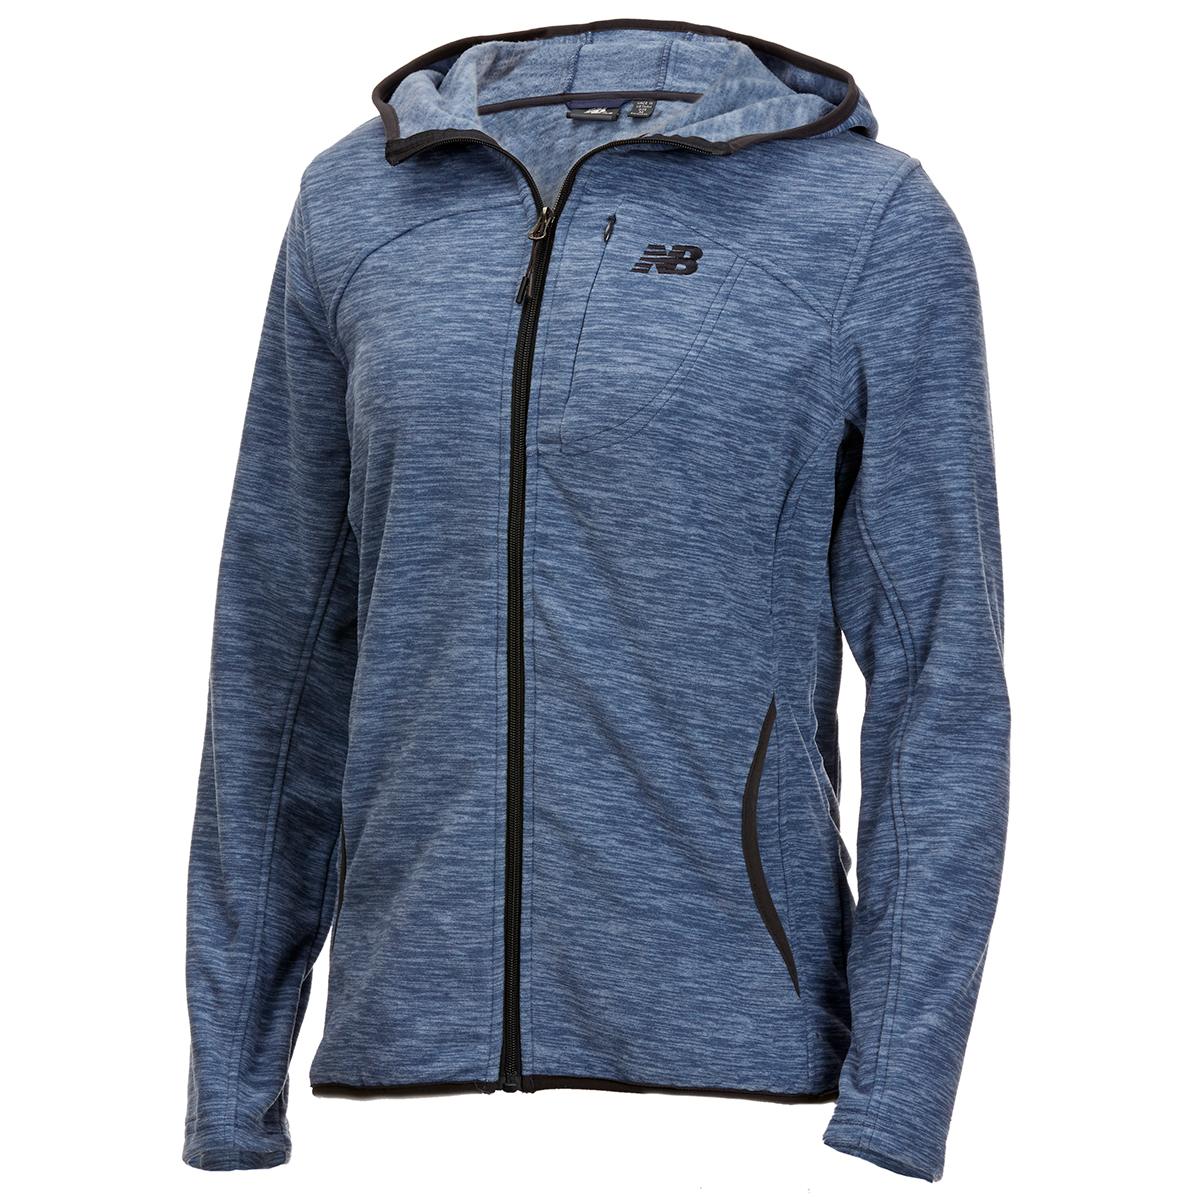 New Balance Women's Polar Fleece Space-Dye Full-Zip Hoodie - Blue, M